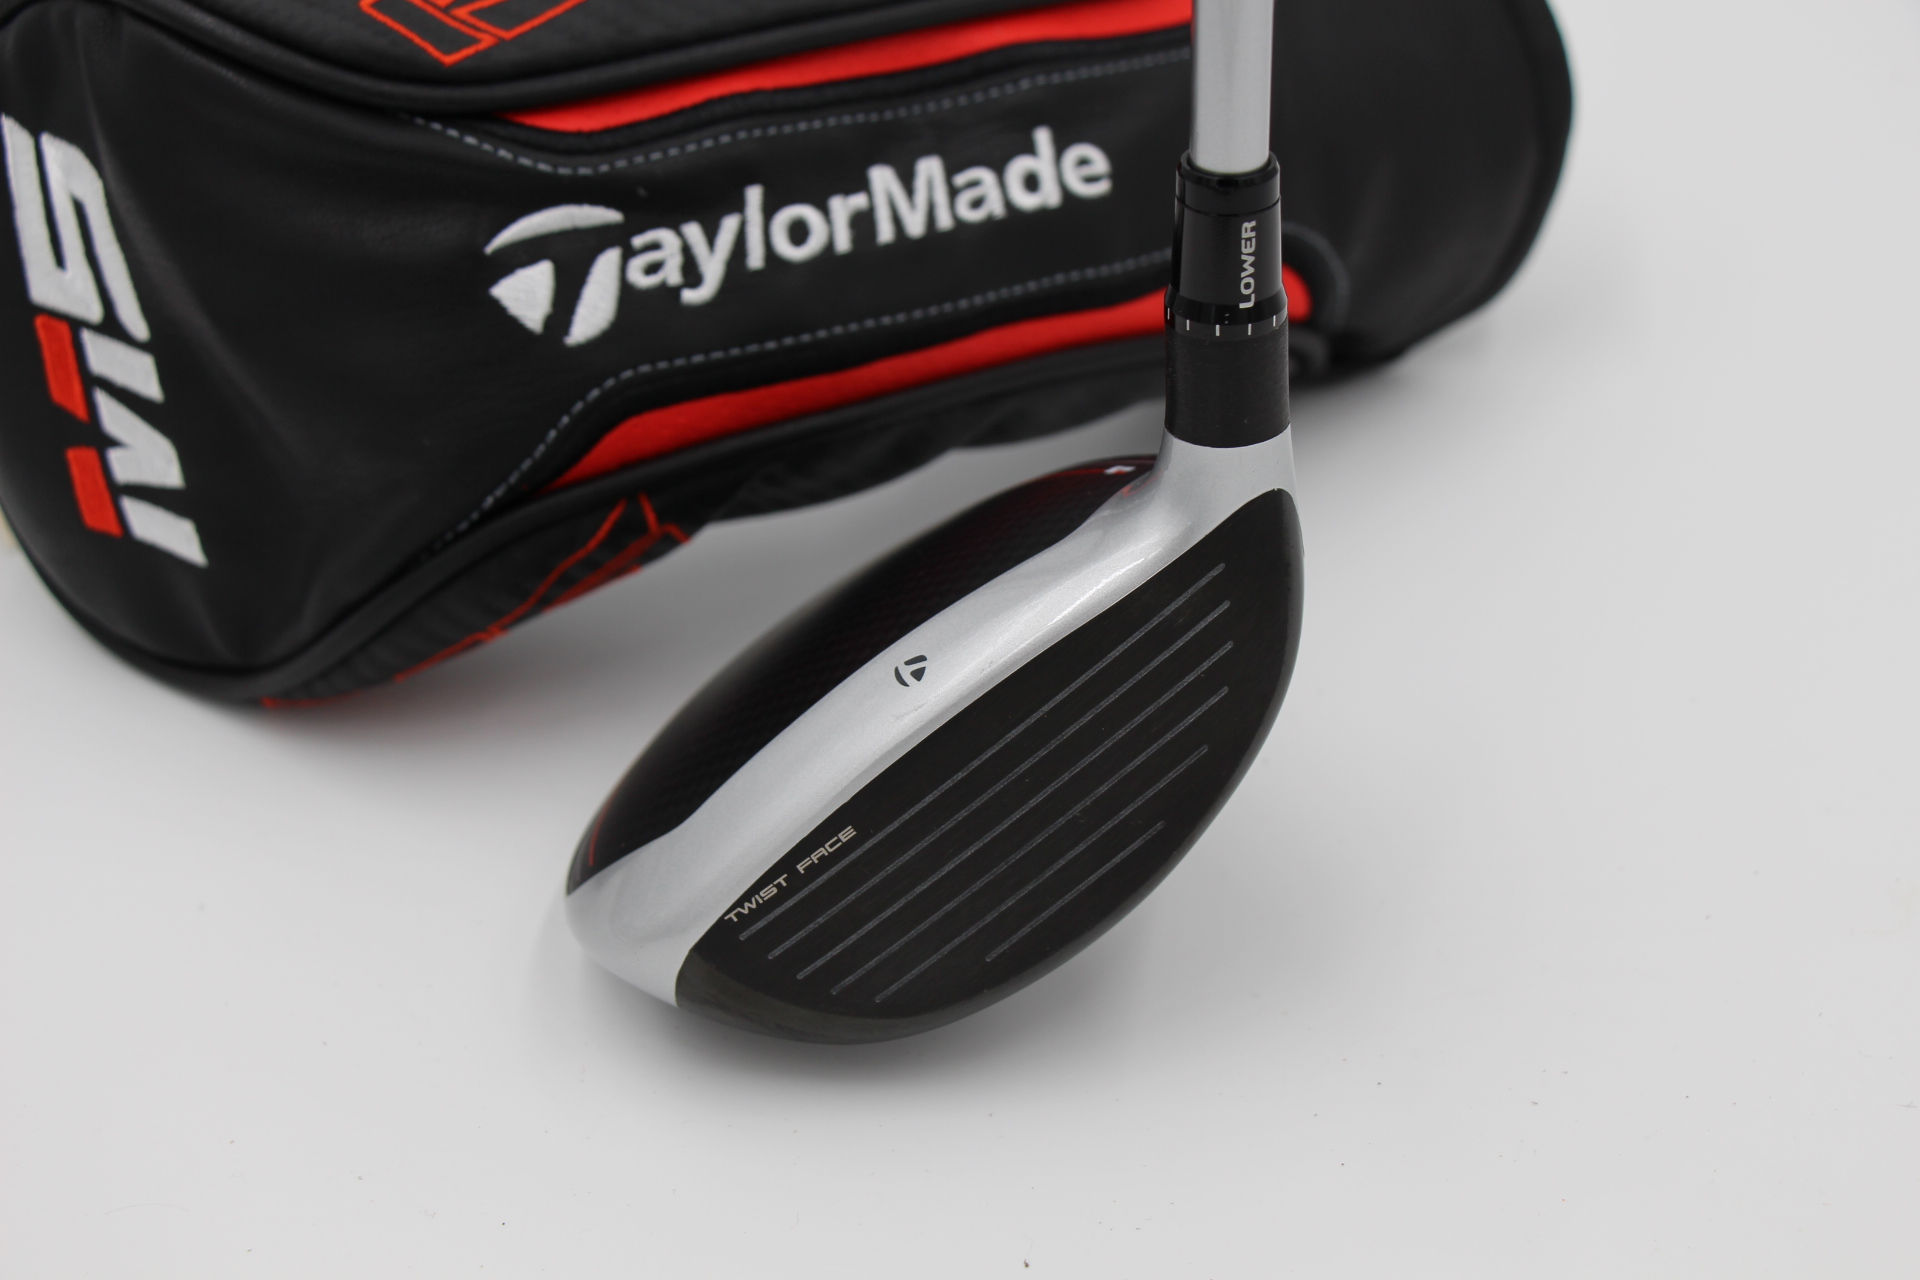 TaylorMade M5 5-Wood Fairway